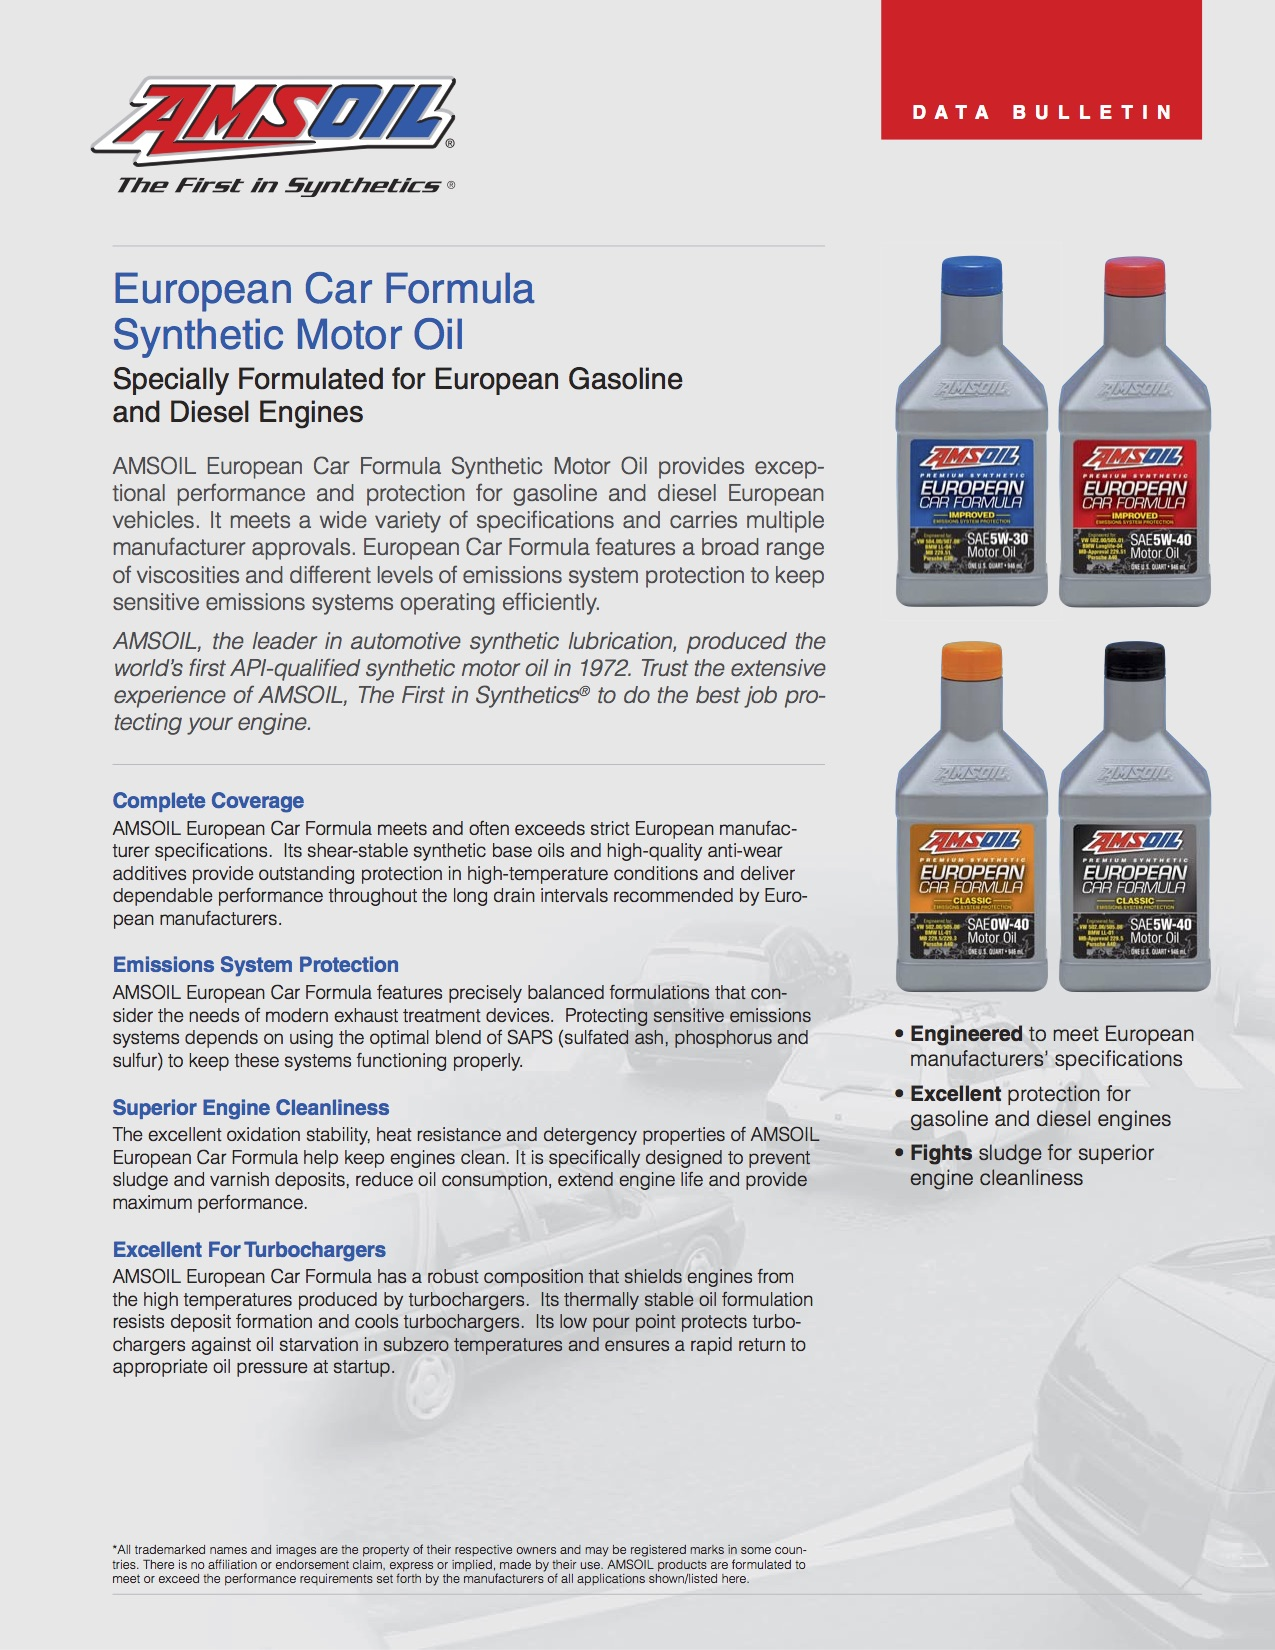 European Car Formula Synthetic Motor Oil AFL